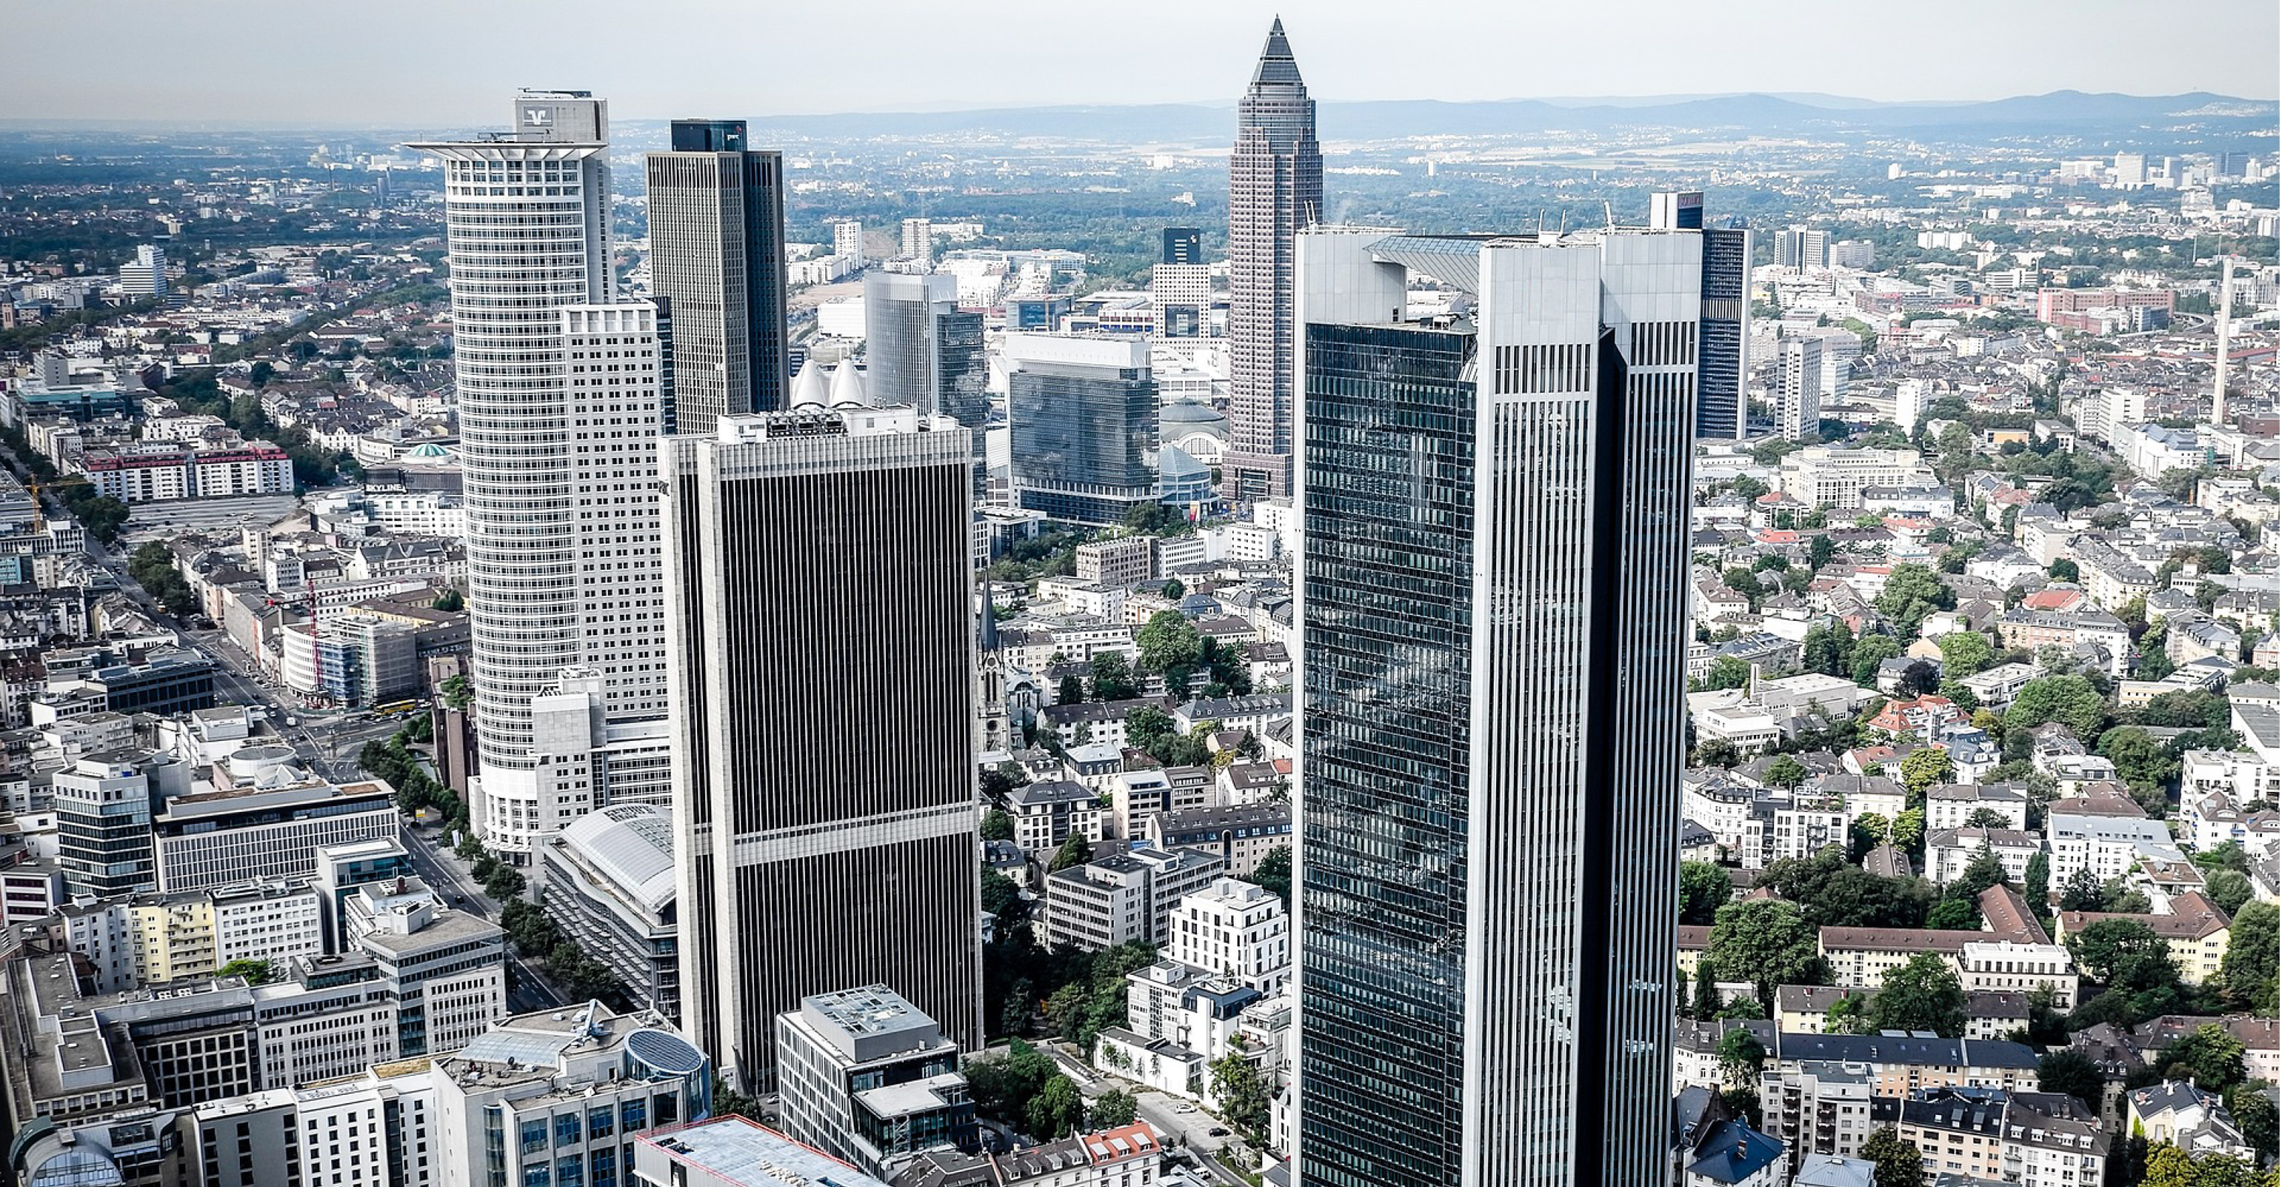 Banken in Frankfurt am Main © Pixabay/Piro4D